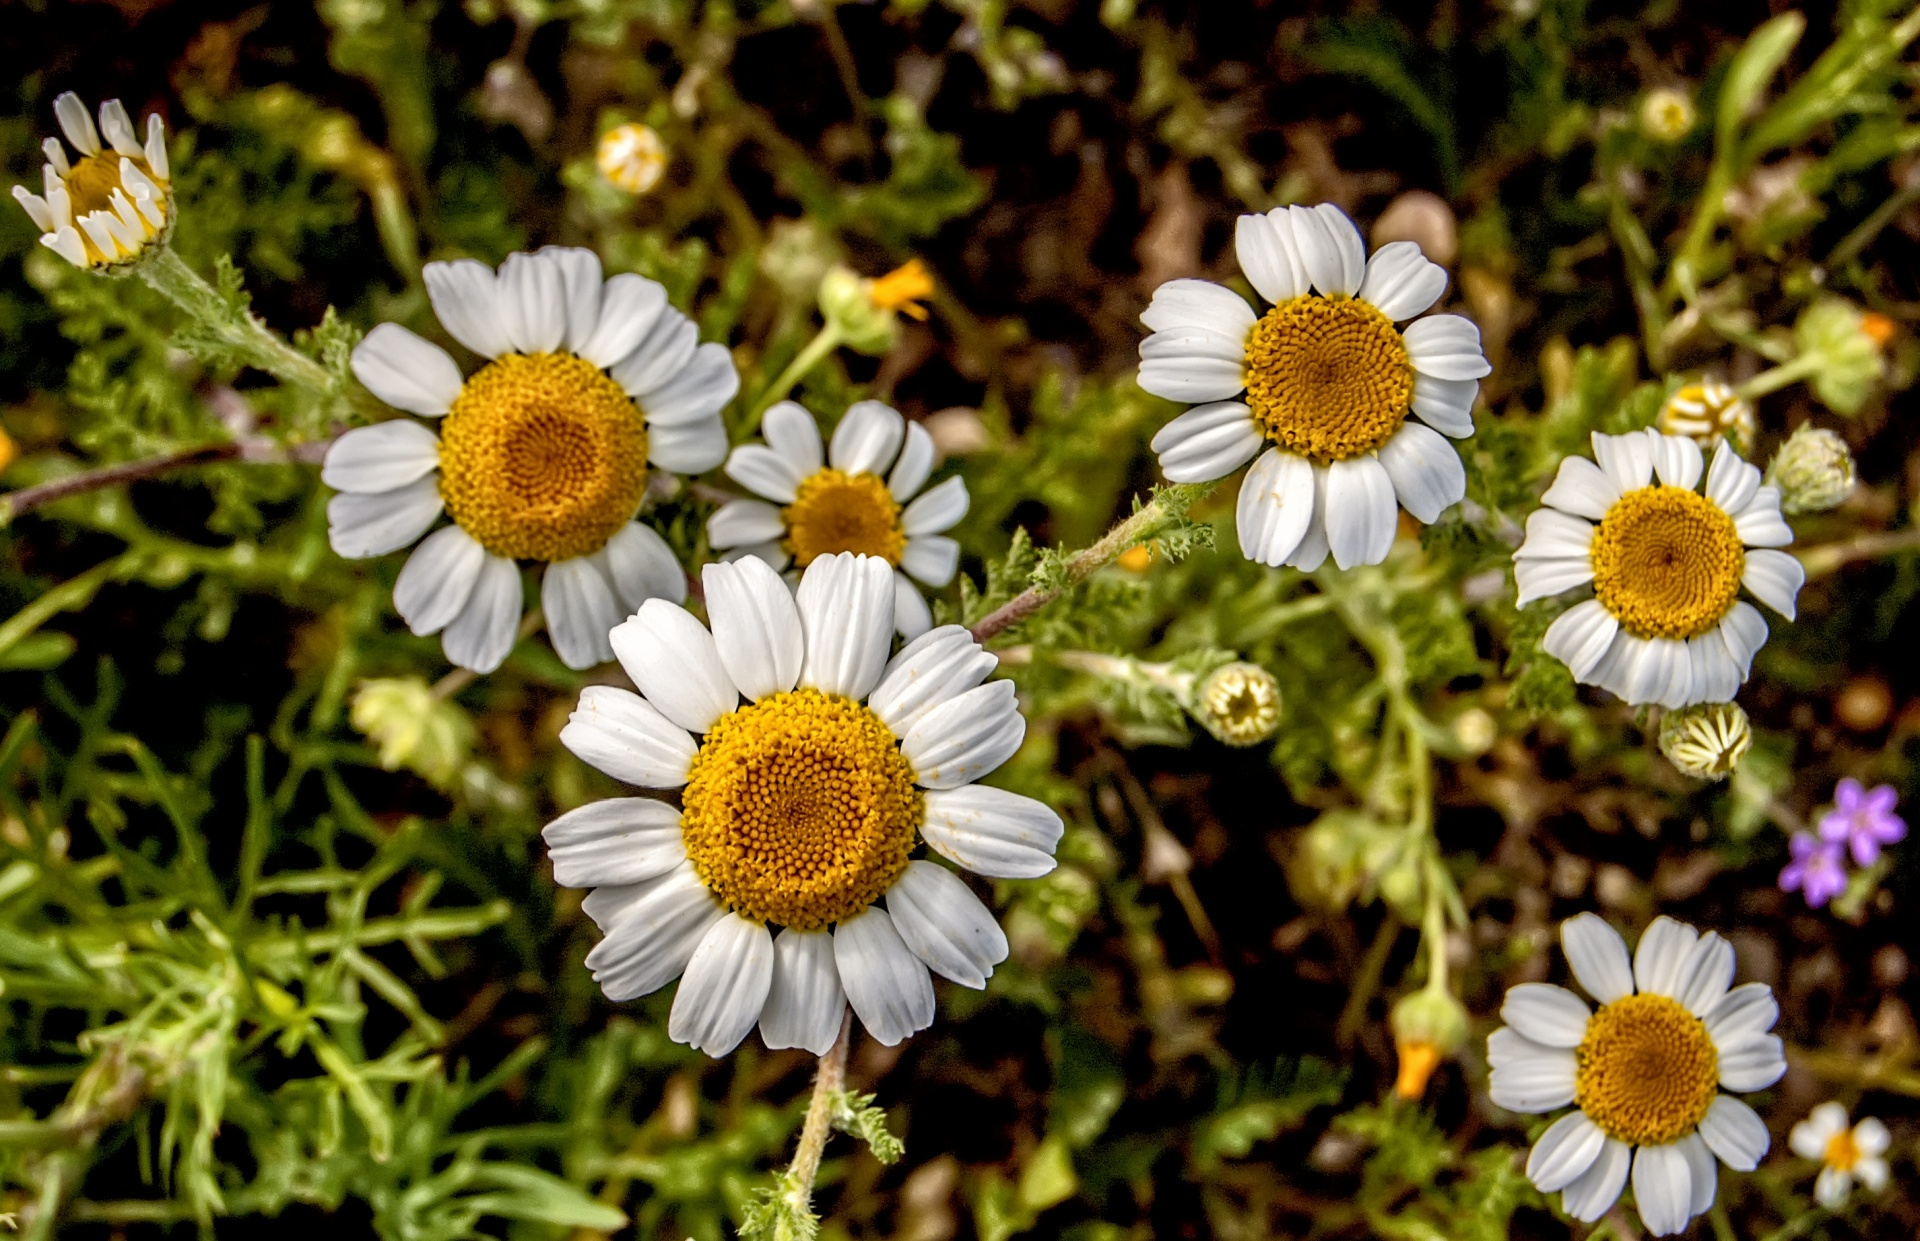 Wild daisies every flower blooms in its own time image result for wild daisies izmirmasajfo